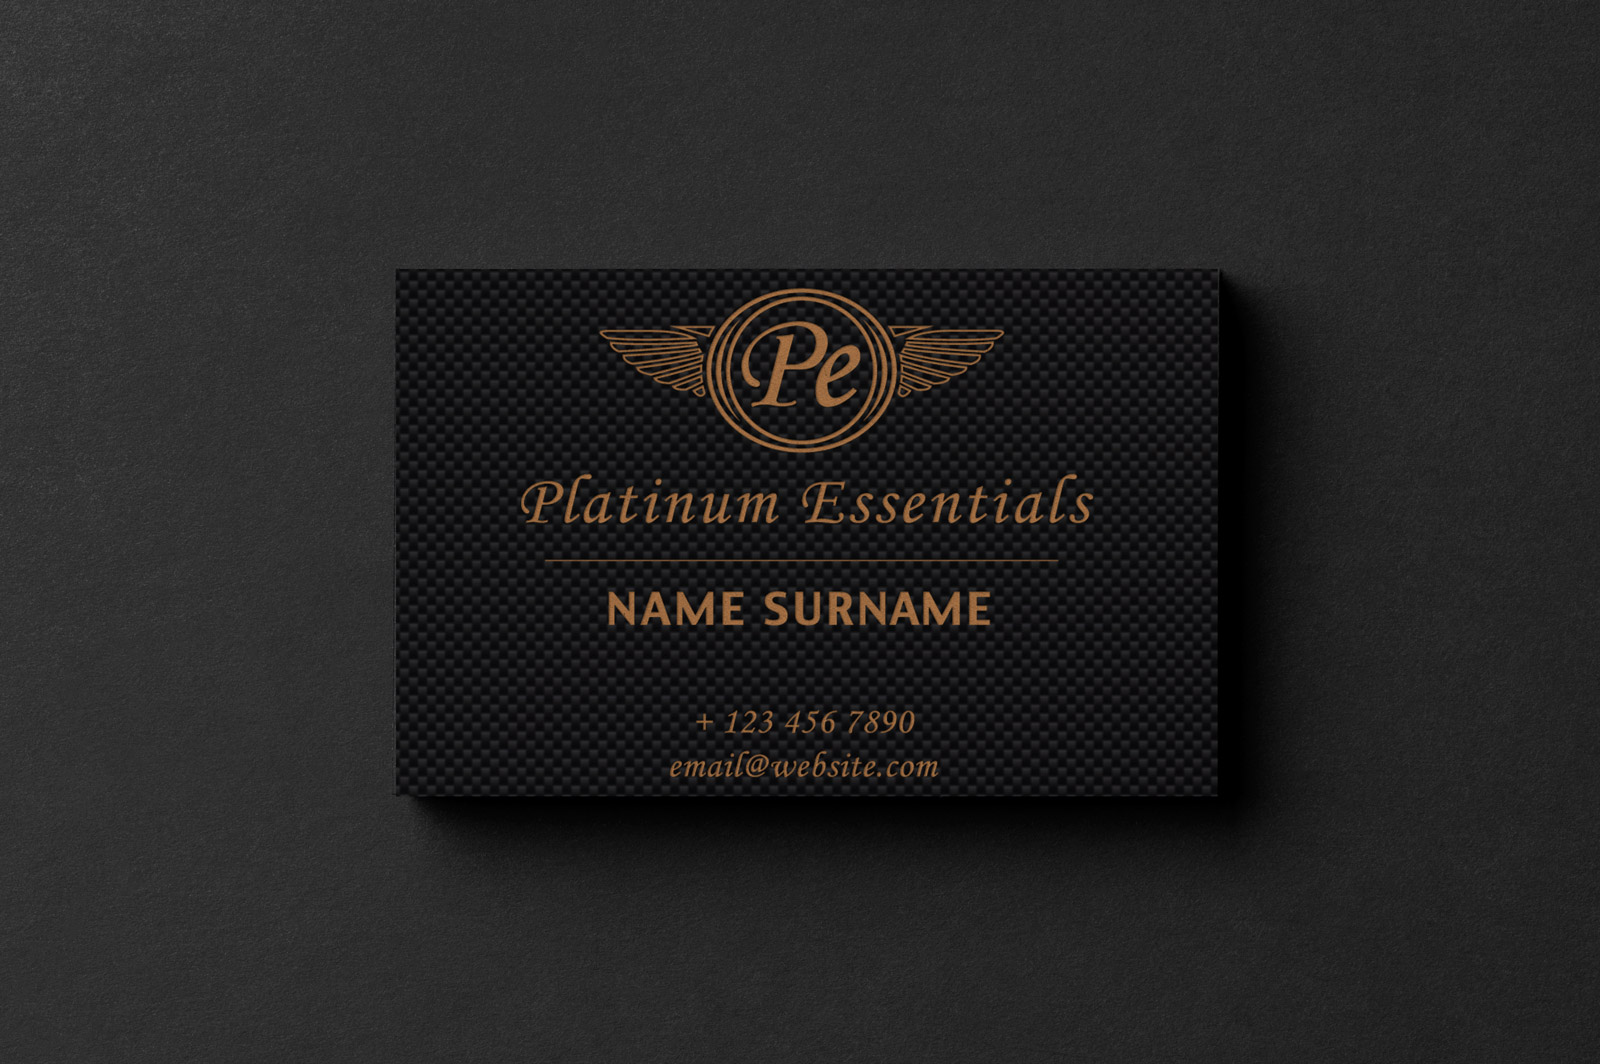 Carbon fibre business cards cardissimo your identity platinum essentials cardissimo carbon fibre business card colourmoves